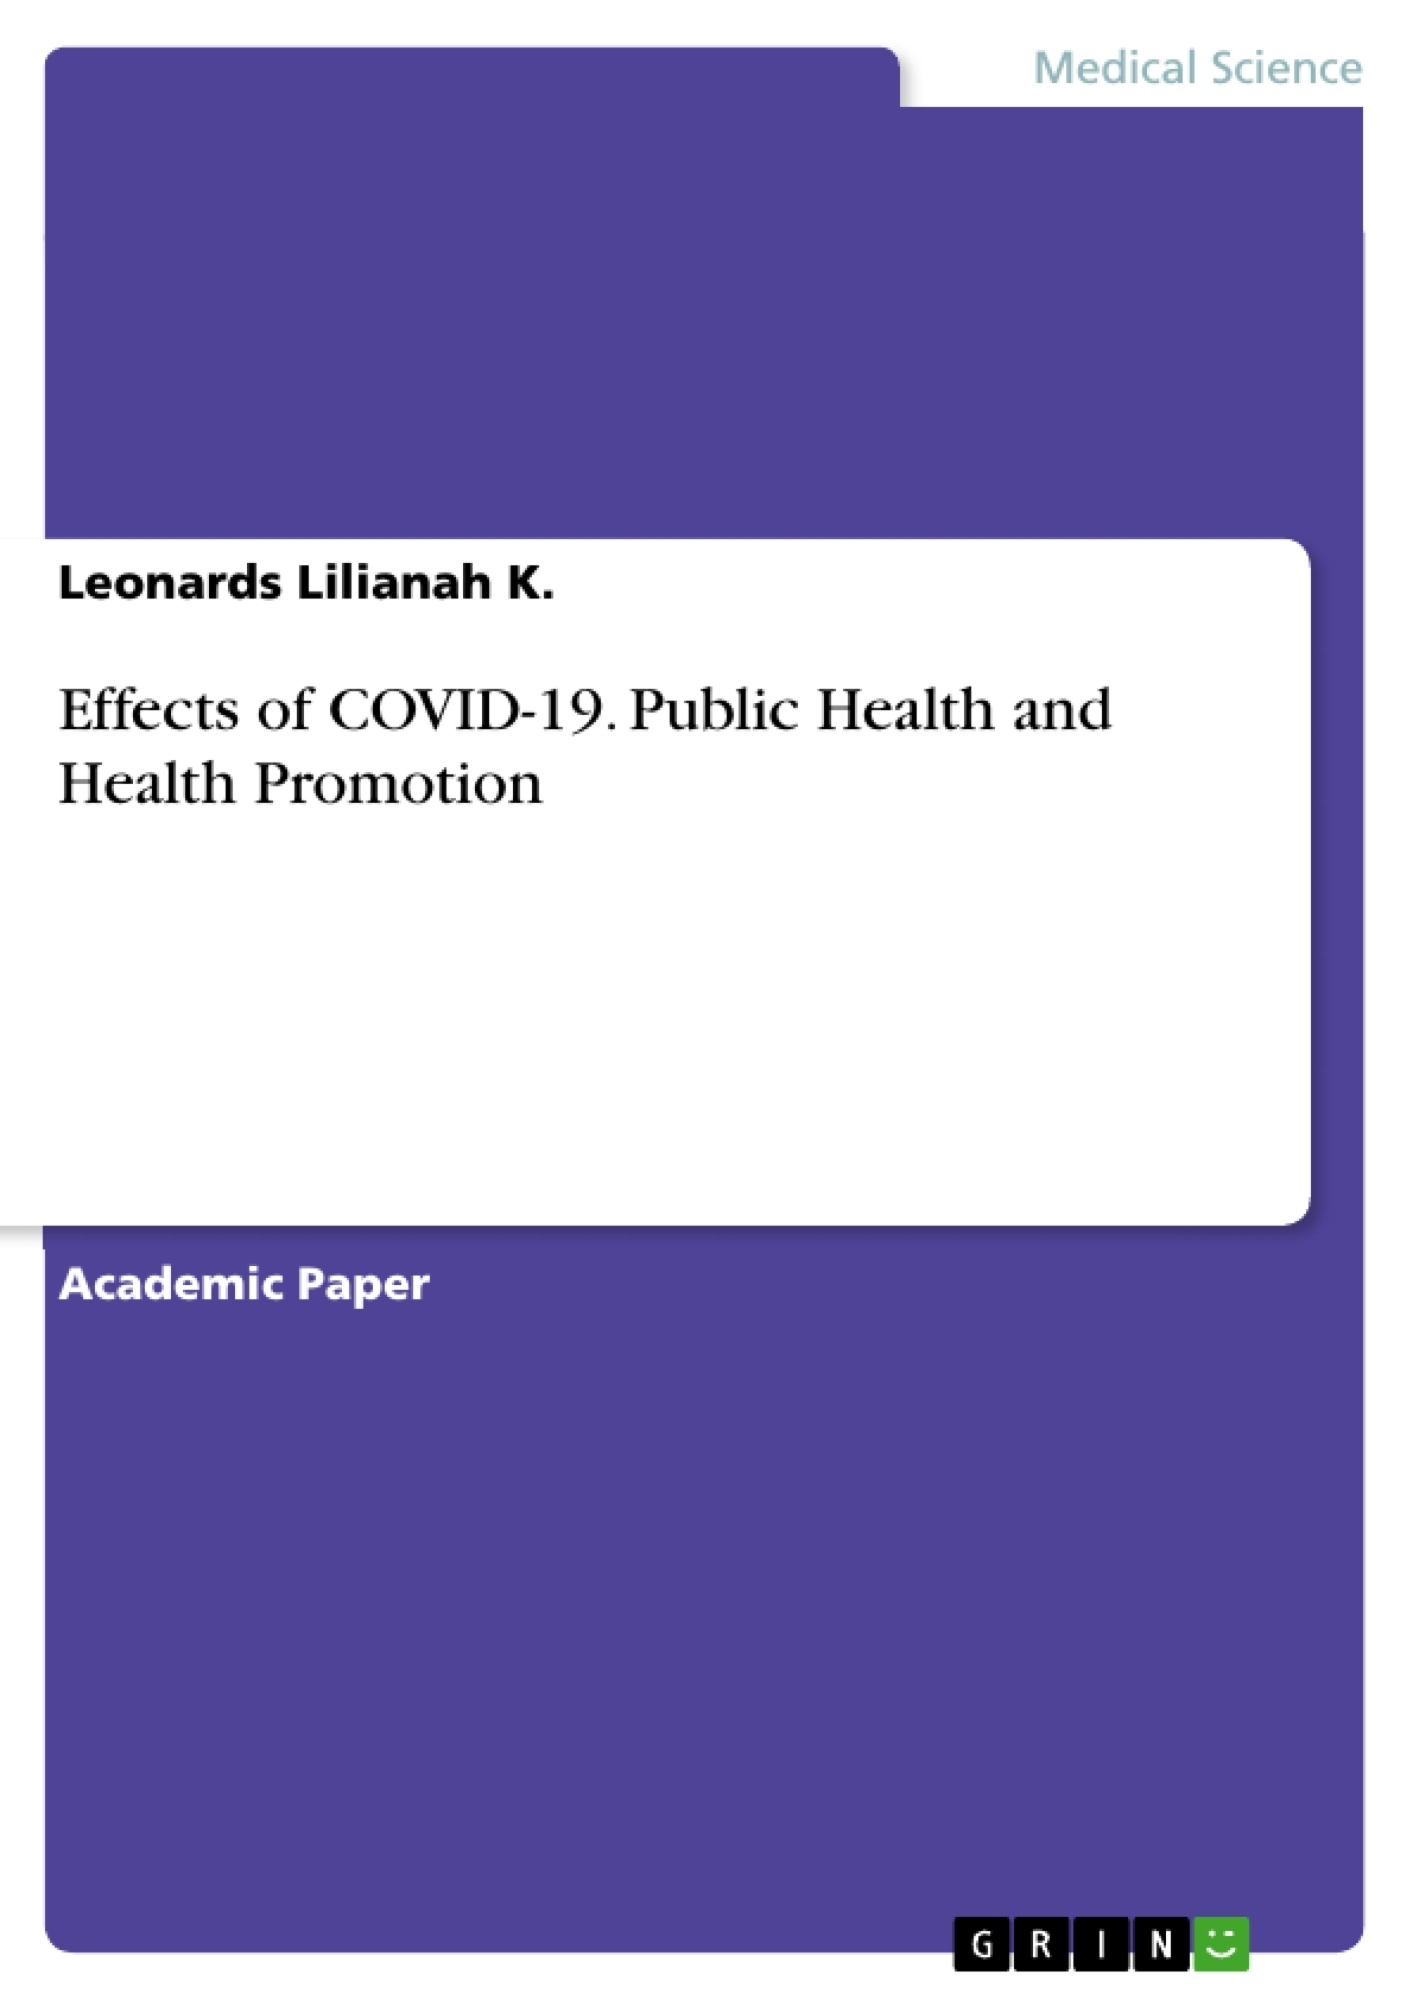 Title: Effects of COVID-19. Public Health and Health Promotion